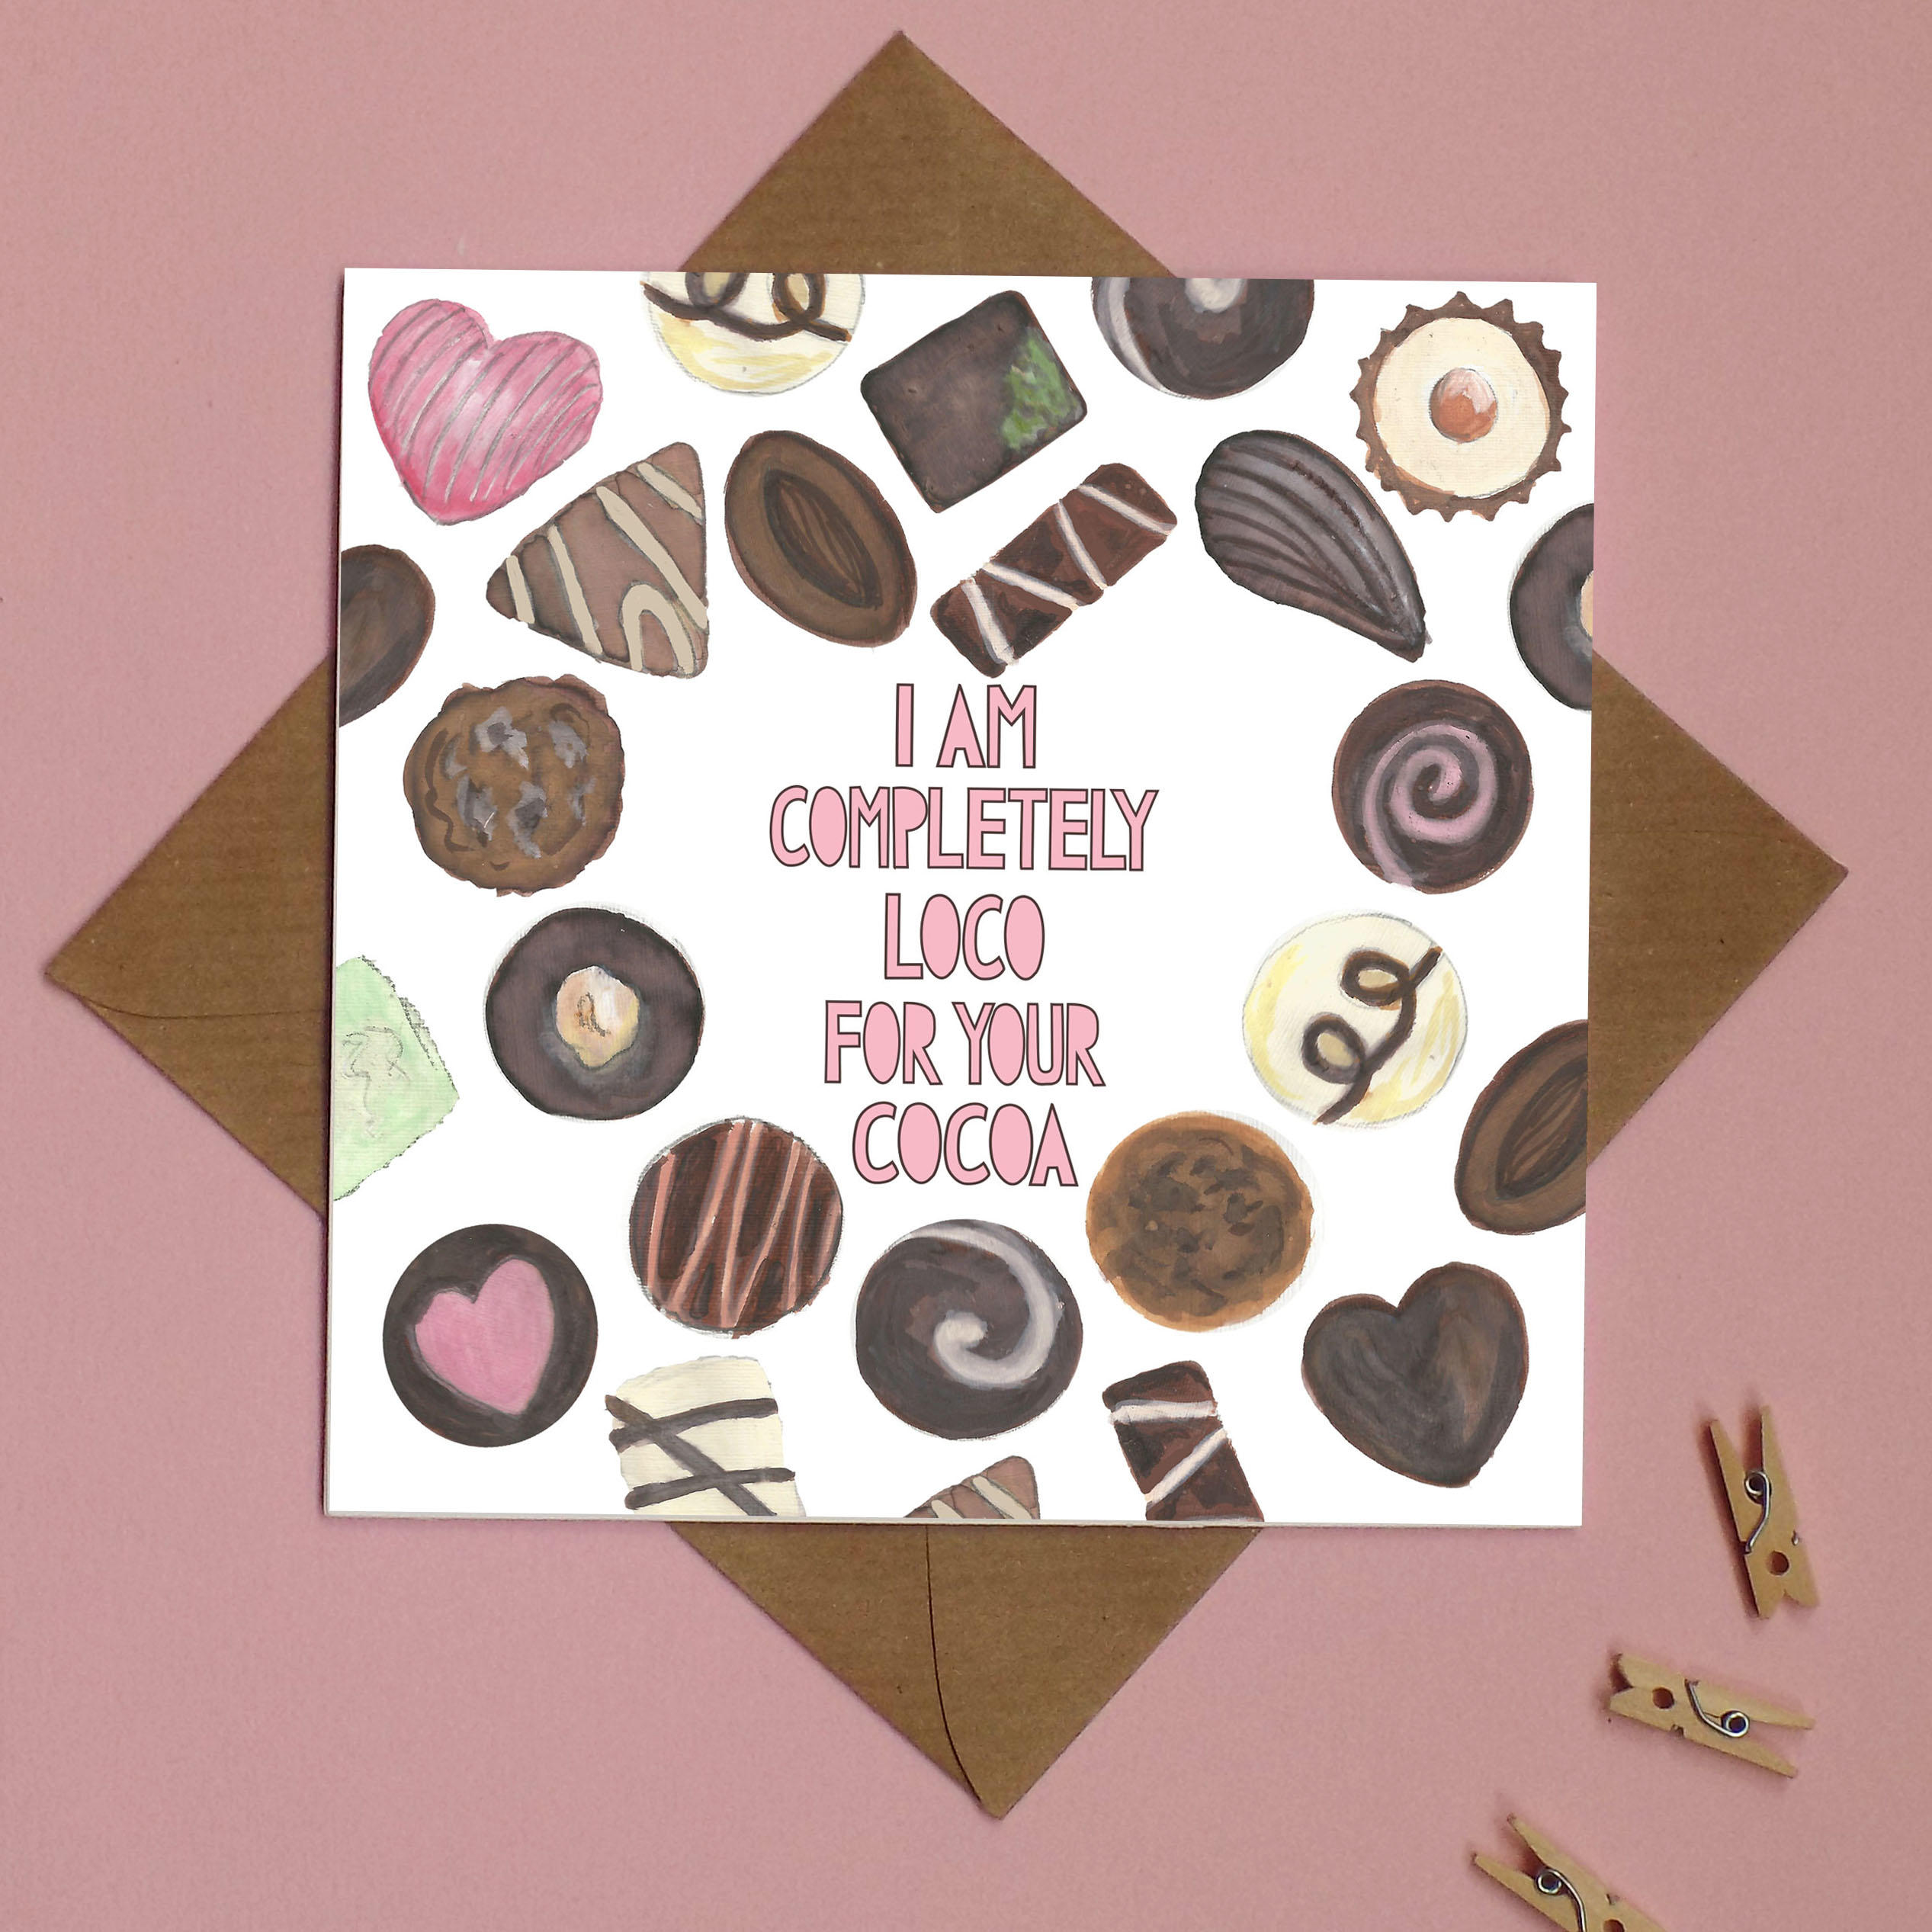 A square card with illustrations of chocolates and pink typographic text saying 'I am completely loco for your cocoa'